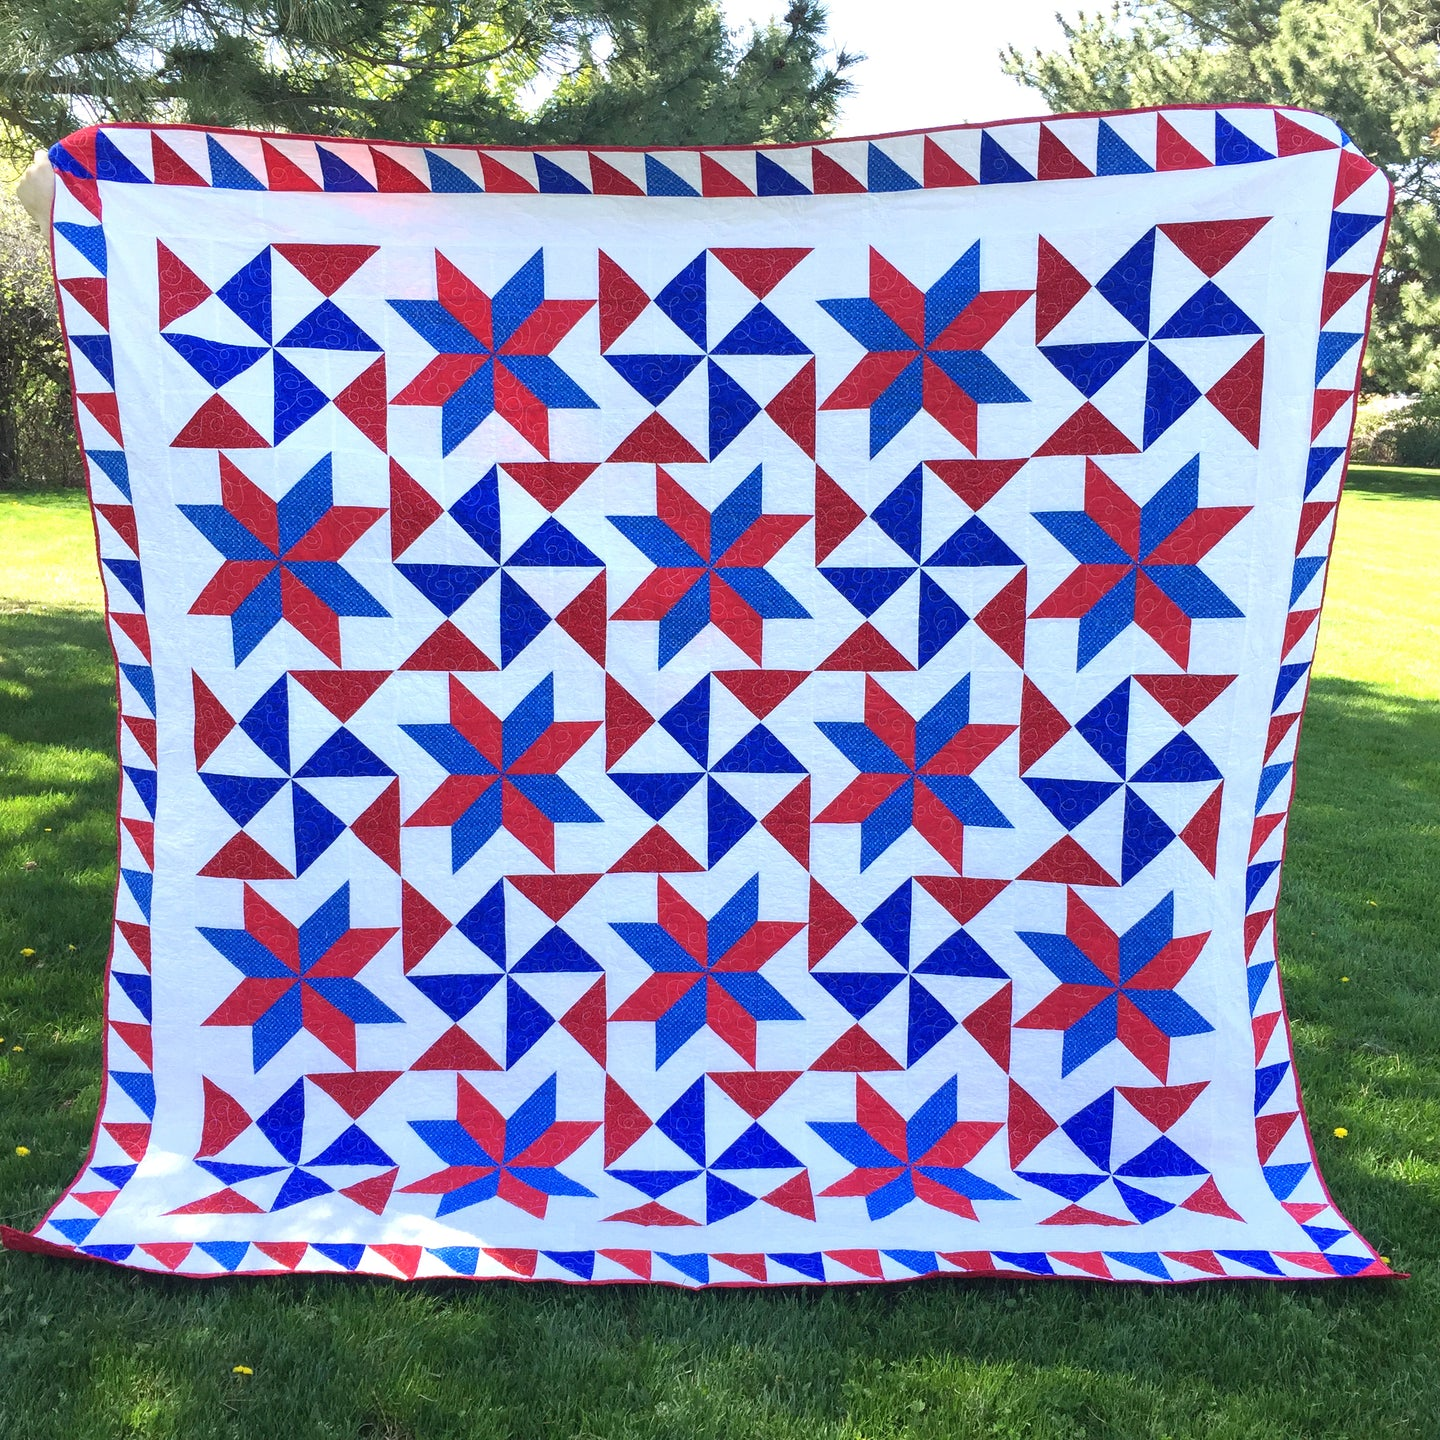 Bombs Bursting Quilt Pattern Digital Download - A Great Patriotic Quilt for Beginners or Intermediate Quilters